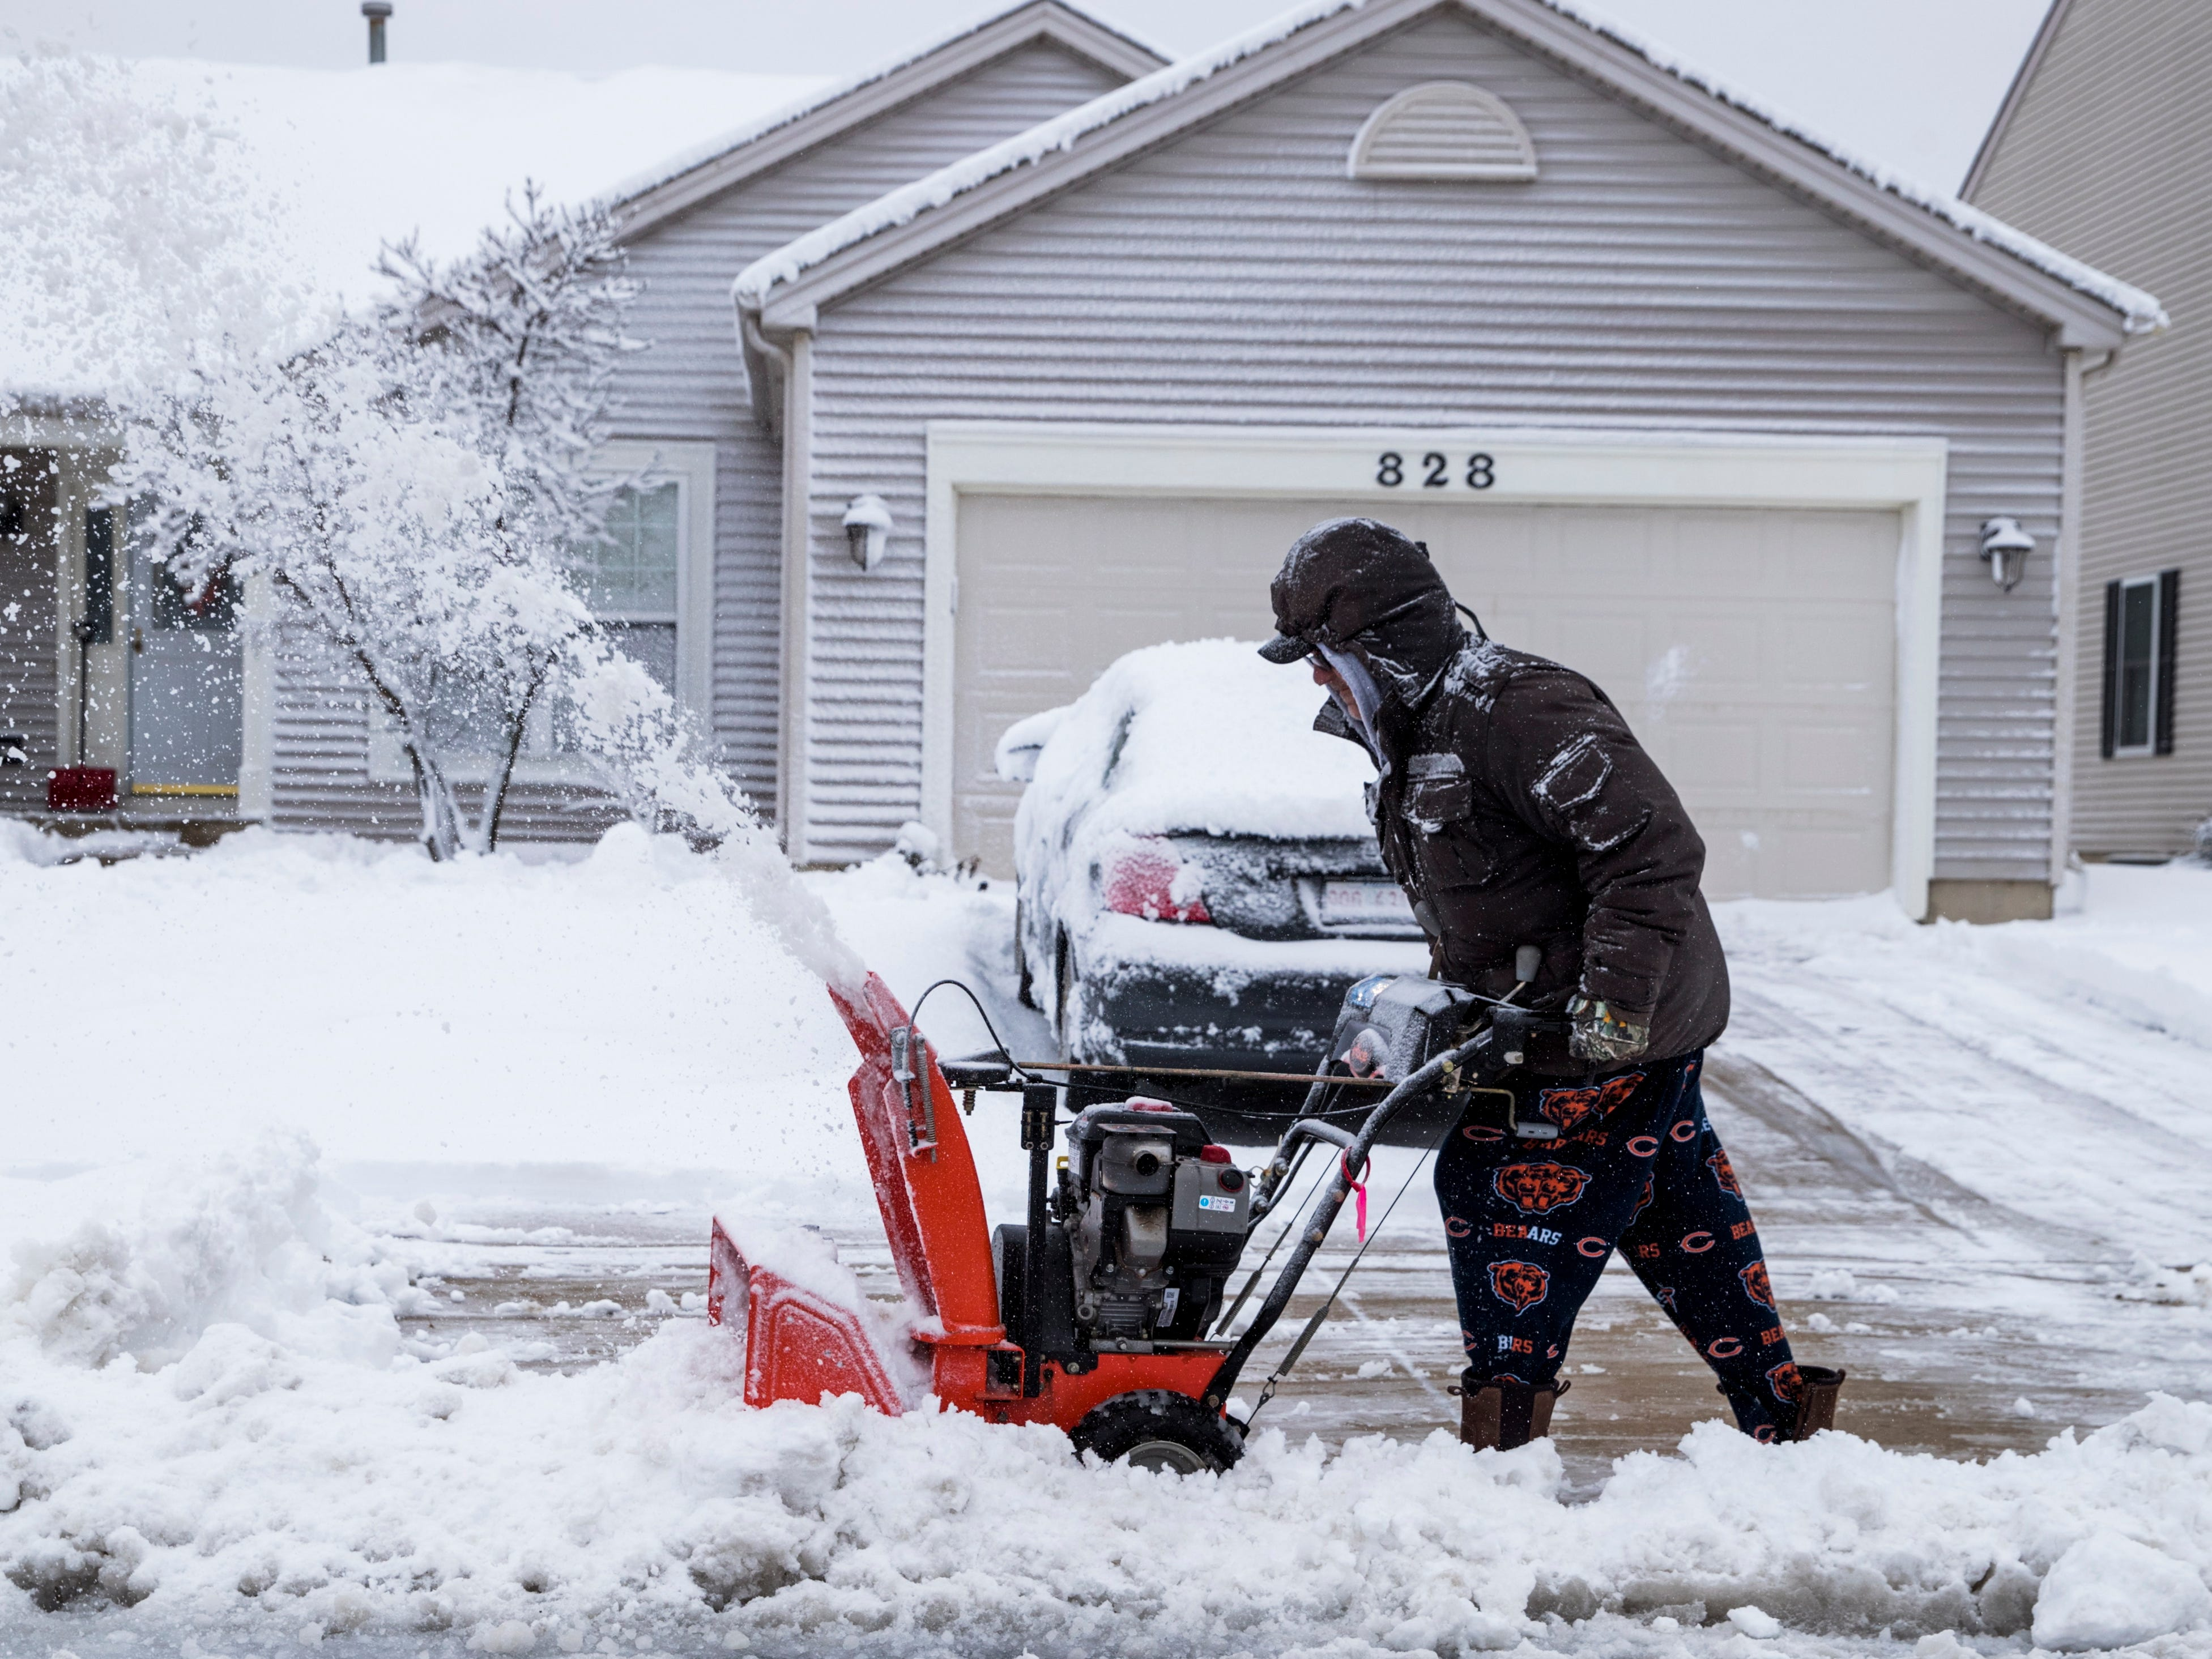 A man uses a snow blower on Nov. 26, 2018, to clear his driveway after a winter storm dumped nearly a foot of snow in Round Lake, Ill.